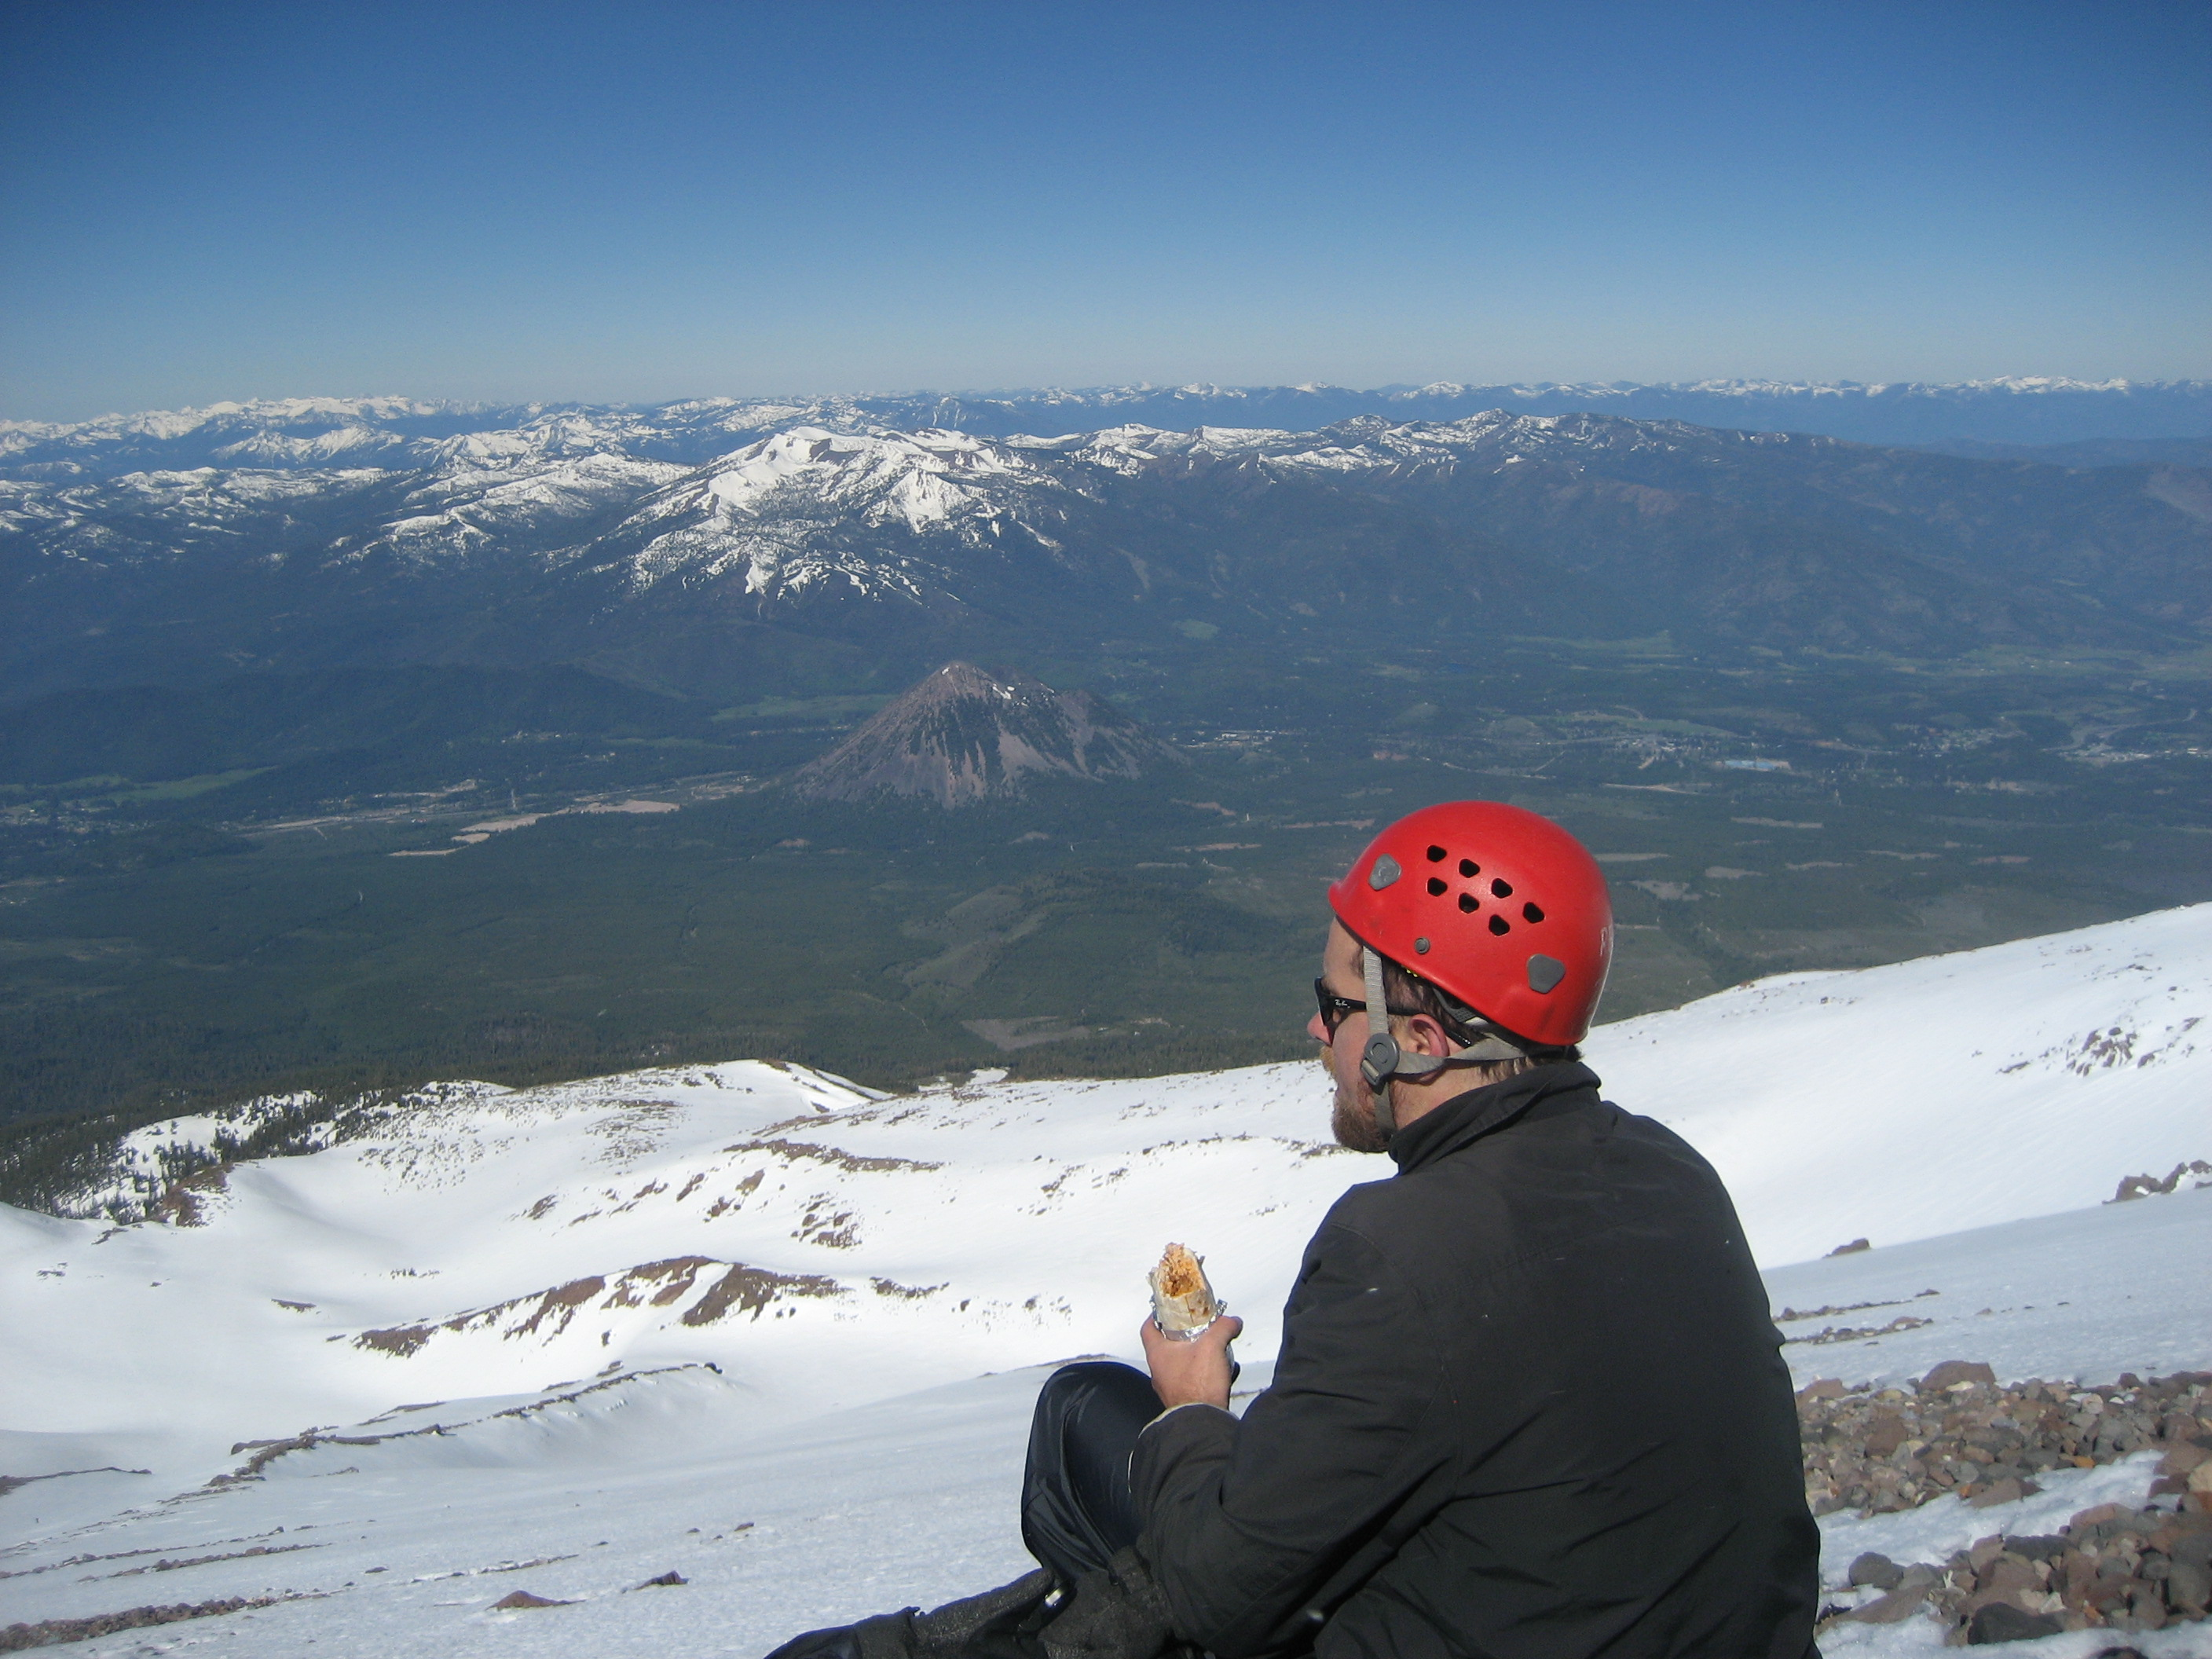 About to descend Mt. Shasta (not from the summit), 2010. (photo by D. Speredelozzi)